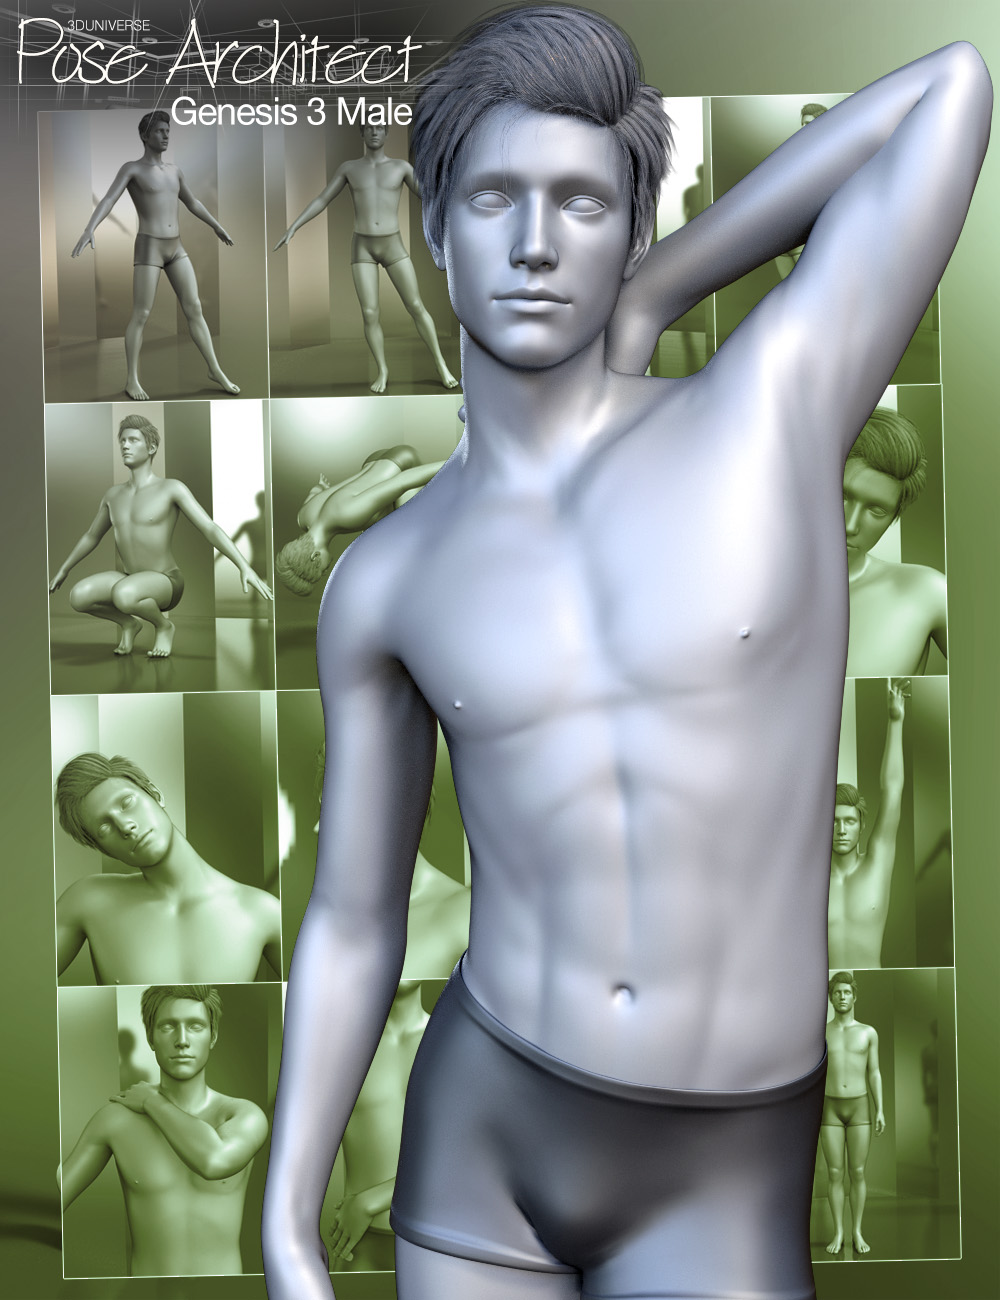 Pose Architect for Genesis 3 Male(s) by: 3D Universe, 3D Models by Daz 3D